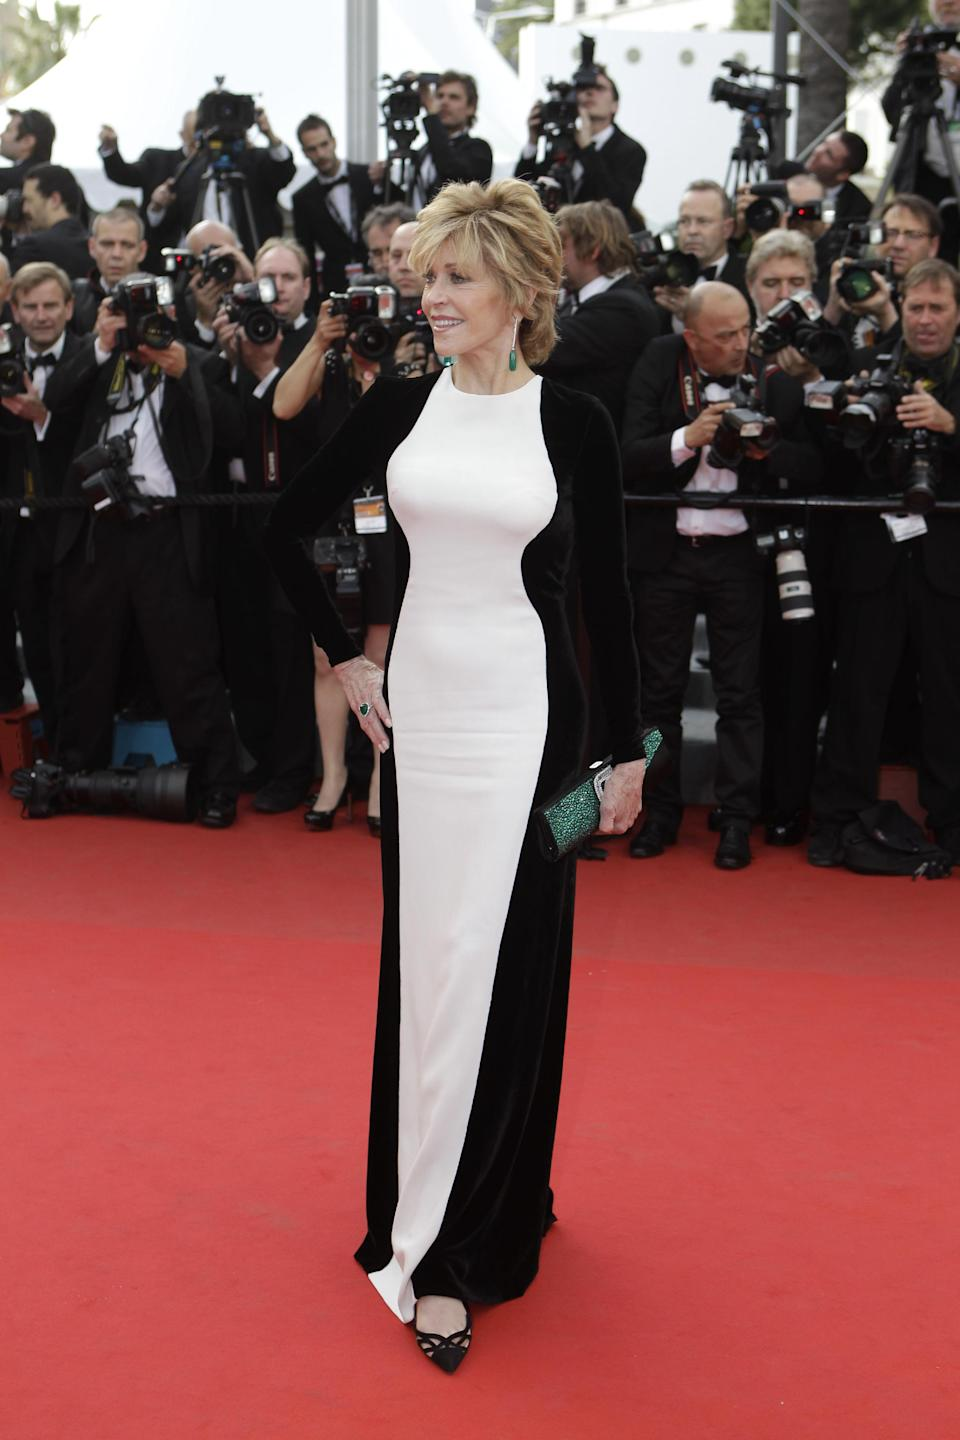 Actress Jane Fonda arrives for the screening of Rust and Bone at the 65th international film festival, in Cannes, southern France, Thursday, May 17, 2012. Fonda is wearing Stella McCartney. (AP Photo/Lionel Cironneau)